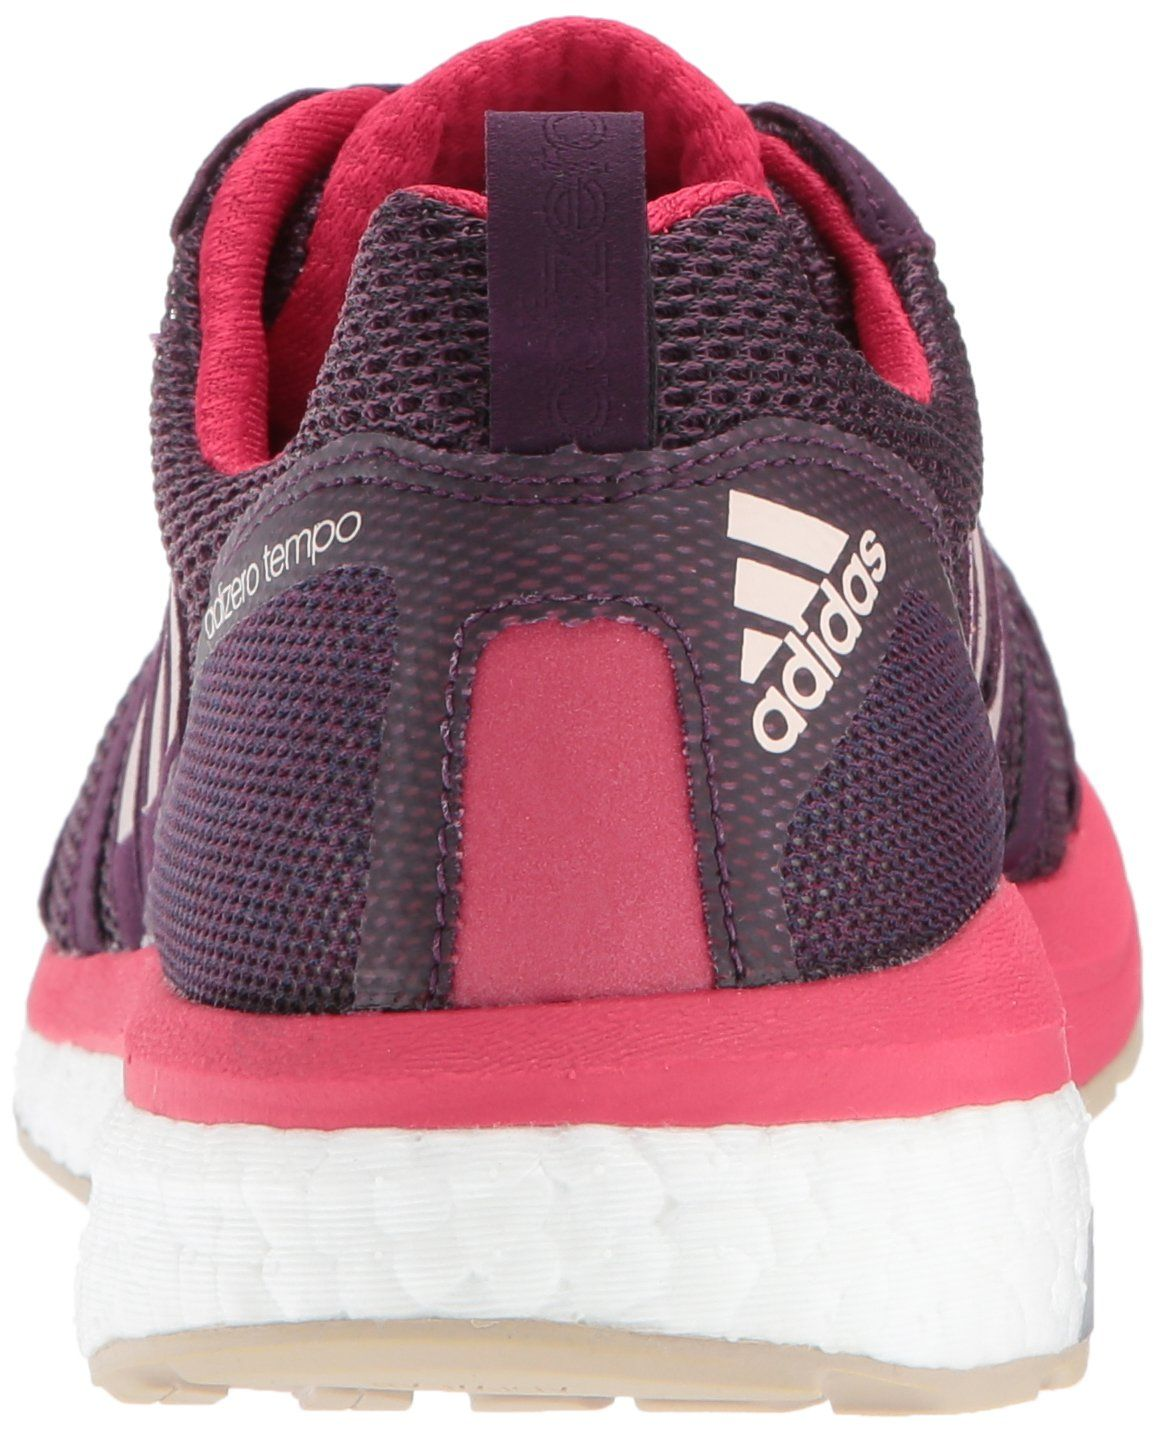 new products 1922d bc7d1 adidas Originals Womens Adizero Tempo 9 w Running Shoe Red Night Ice Pink Energy  Pink 12 Medium US     See this great product. (This is an affiliate link)    ...